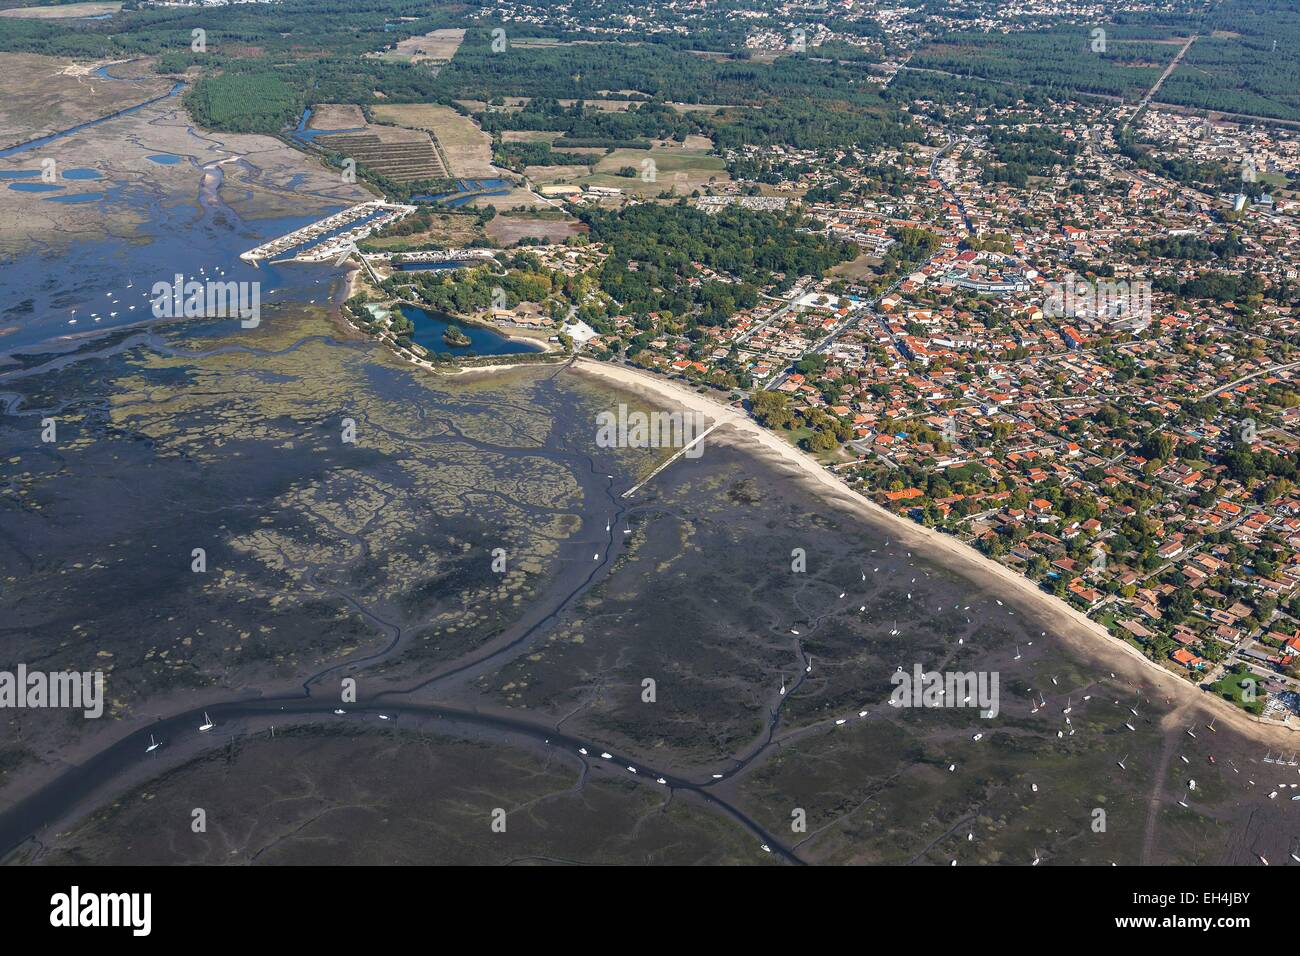 France, Gironde, Ares, the seaside resort on the Bassin d'Arcachon (aerial view) Stock Photo